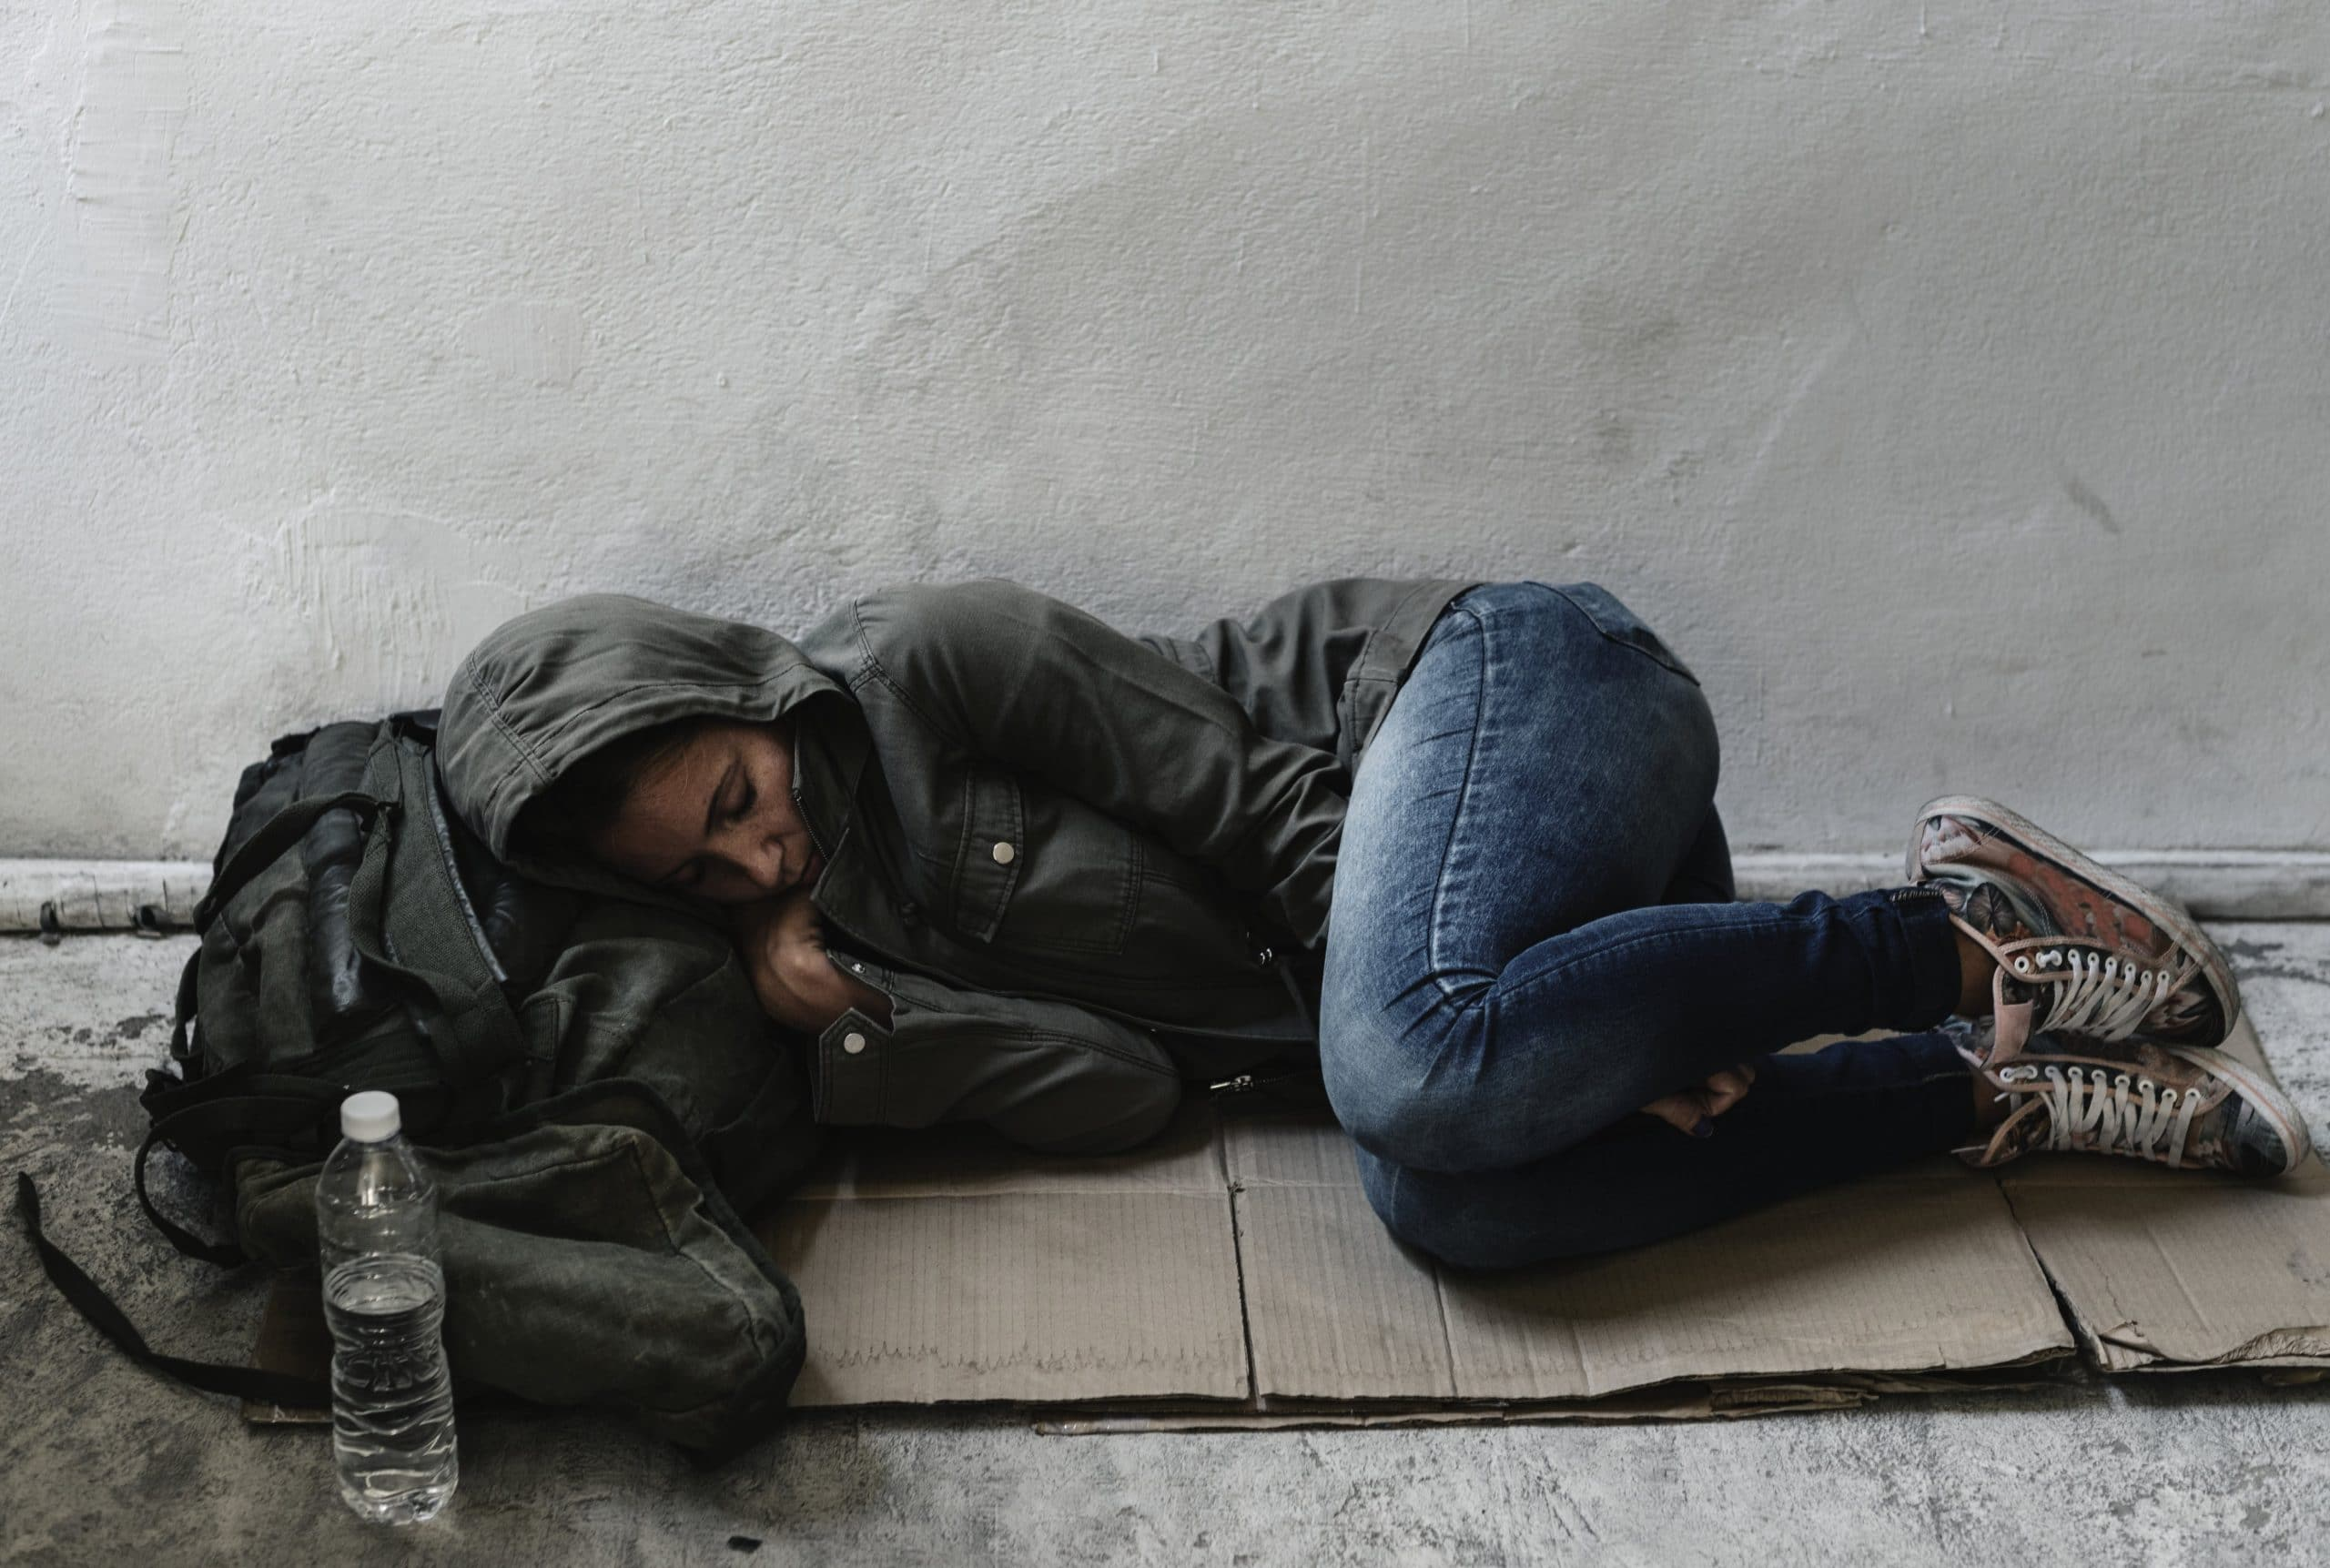 Homeless woman sleeping on a cardboard mat